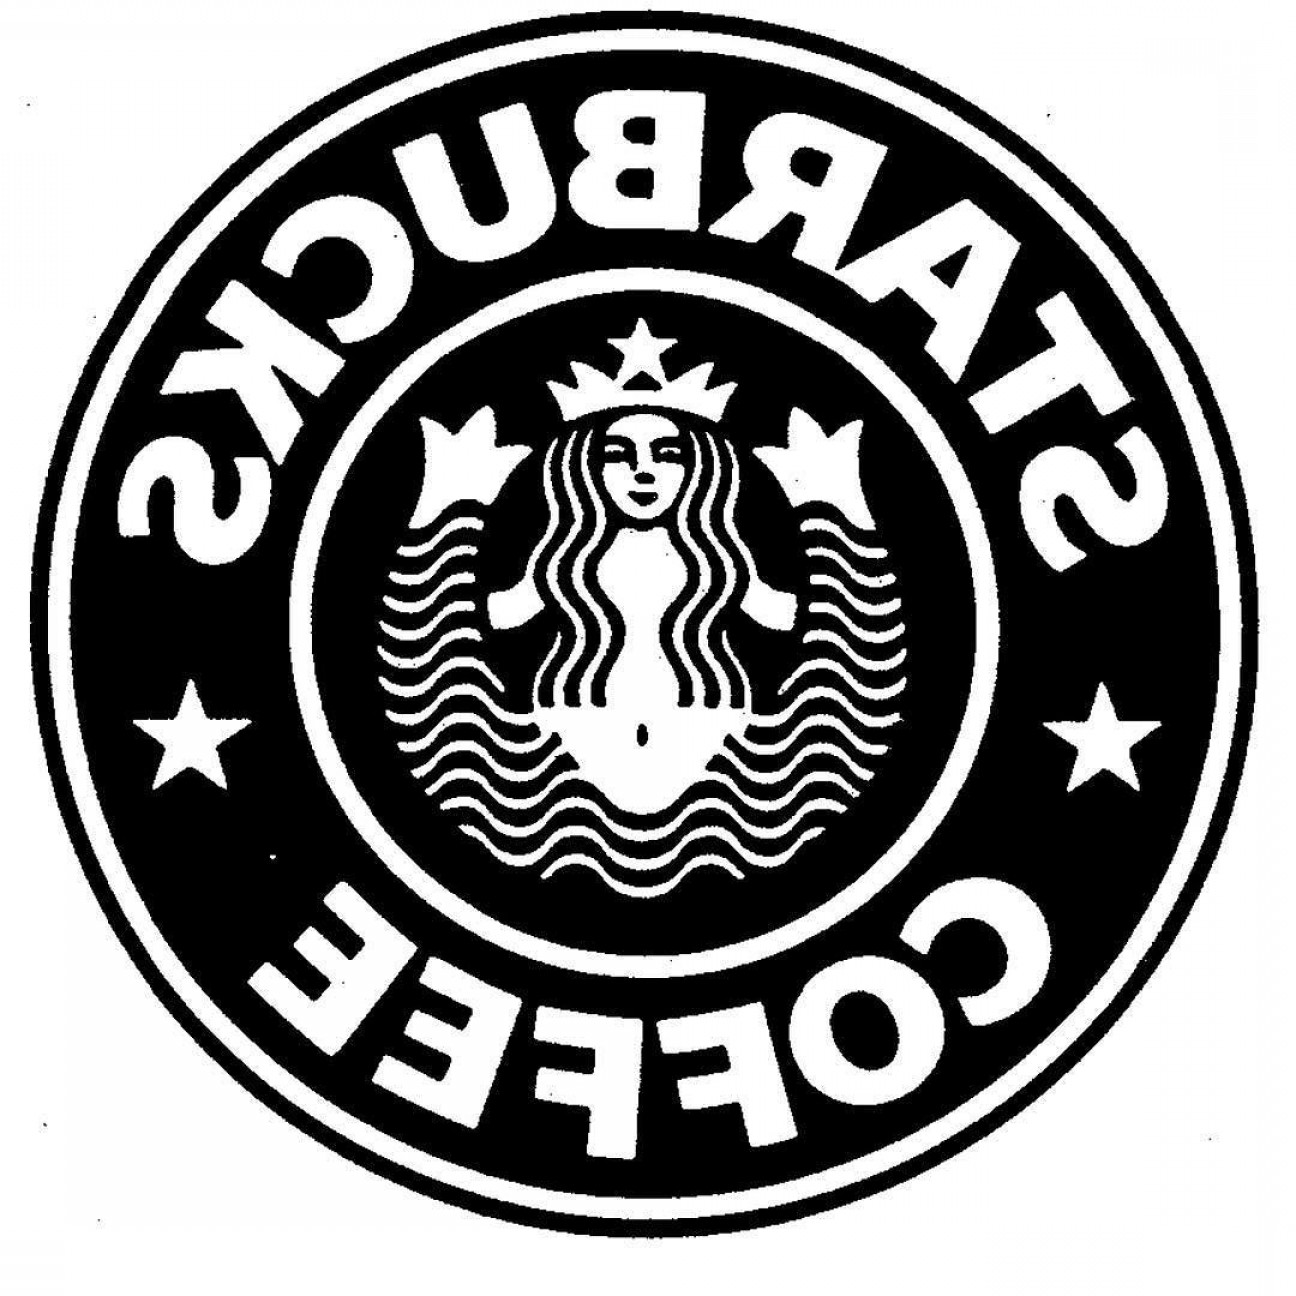 1296x1296 Starbucks Logo Design Vector Free Download Lazttweet